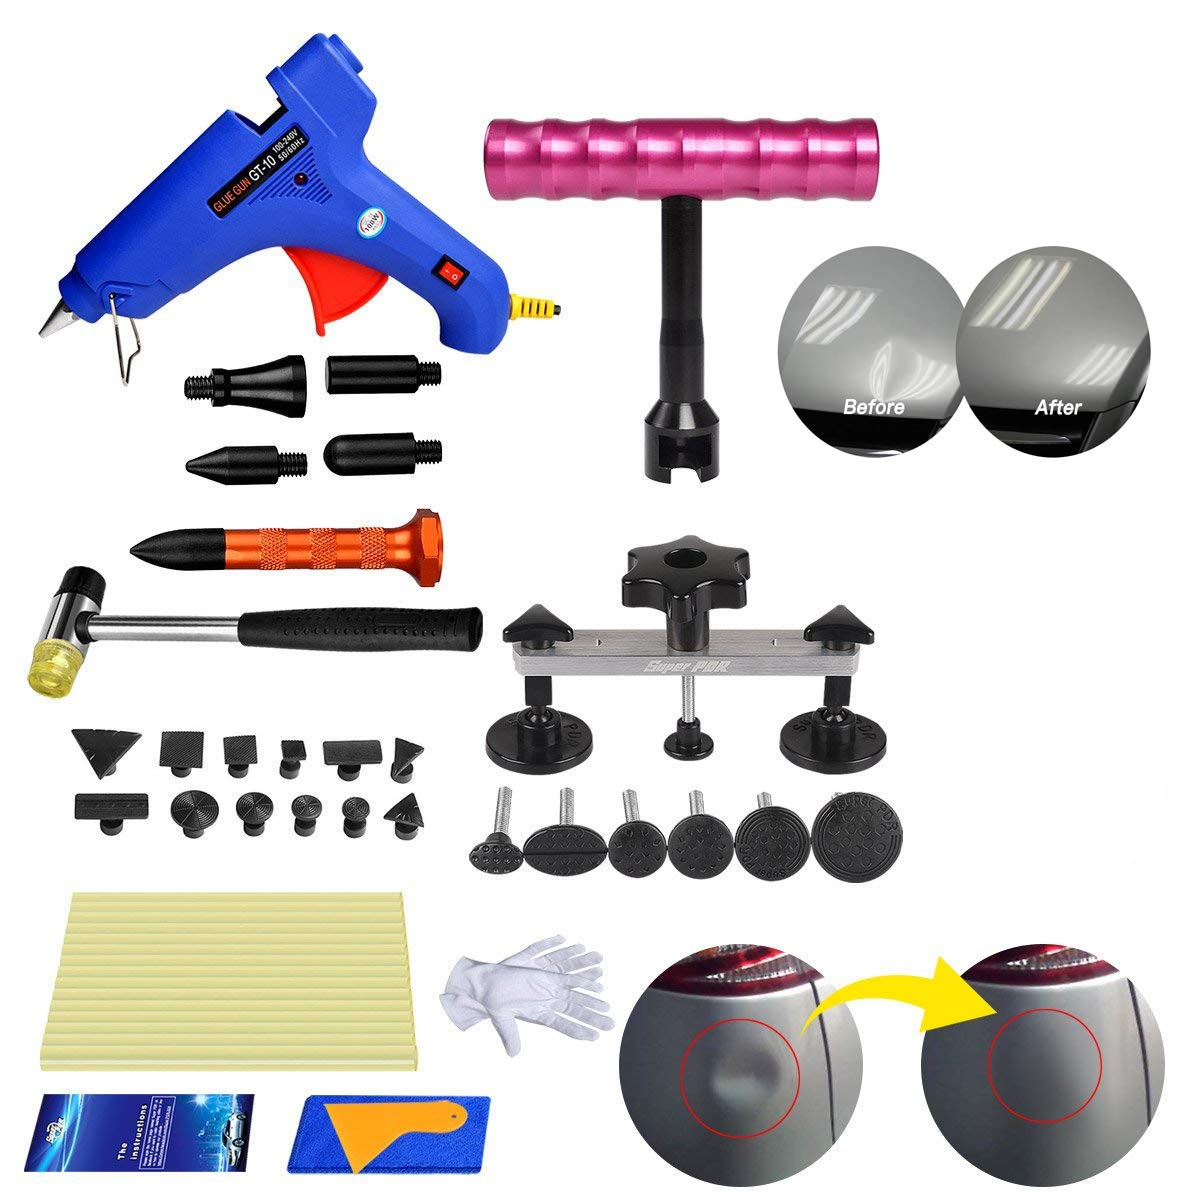 Fly5D 35Pcs Auto Car Dent Repair Dent Remover Puller Tools Kit Hail Damage Refrigerator Stainless Steel Door Dent Ding Tap Down Hammer Repair